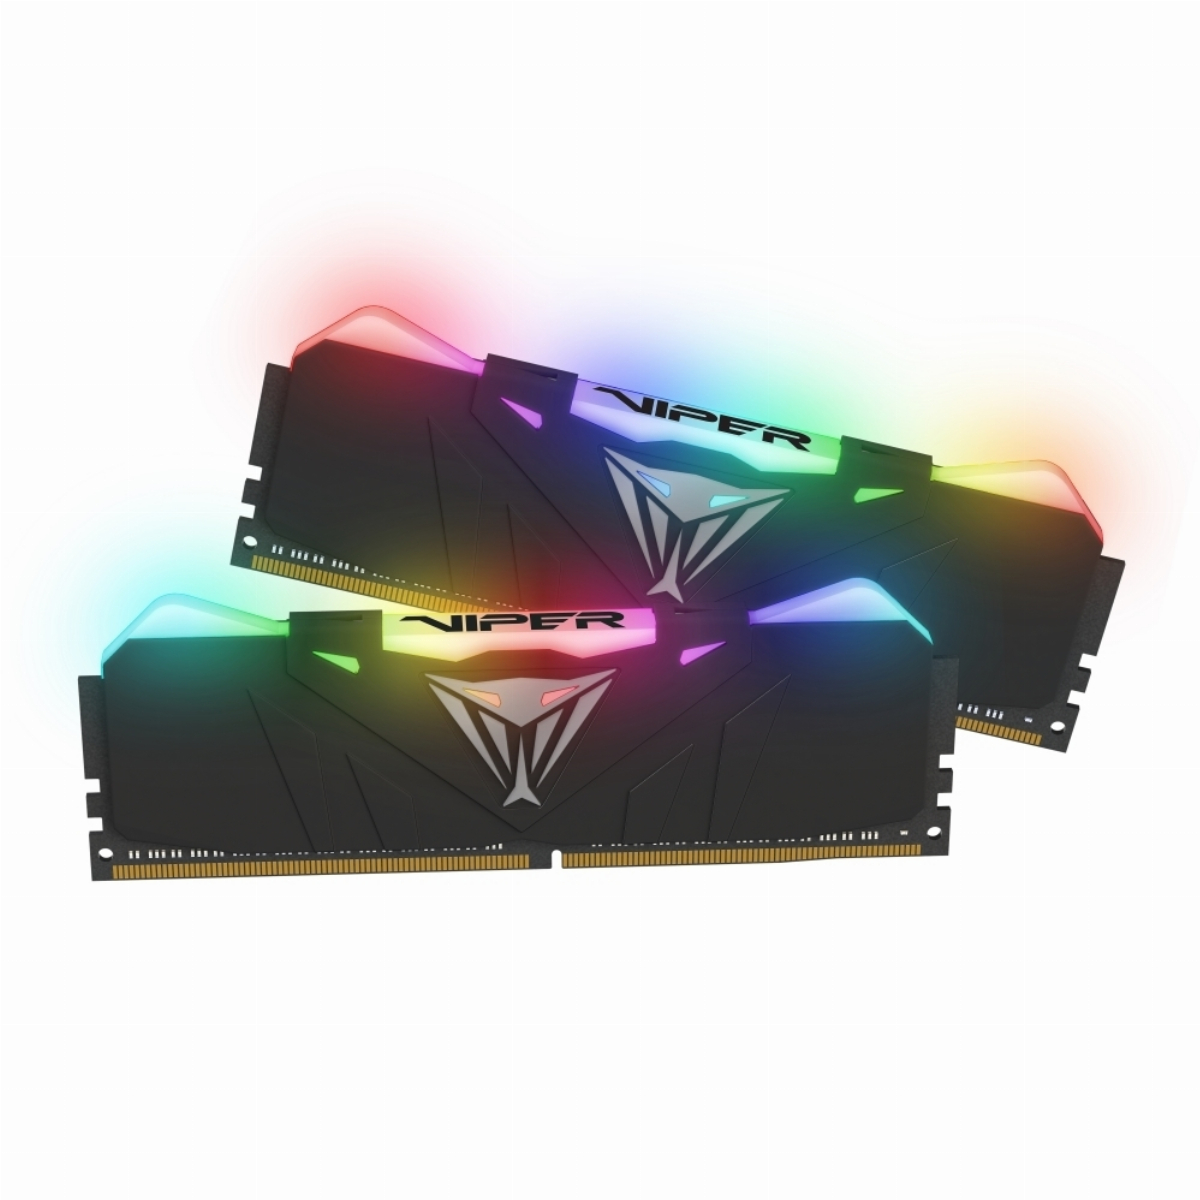 Памет Patriot Viper RGB Black 16GB (2x8GB) 2666Mhz DDR4 CL15